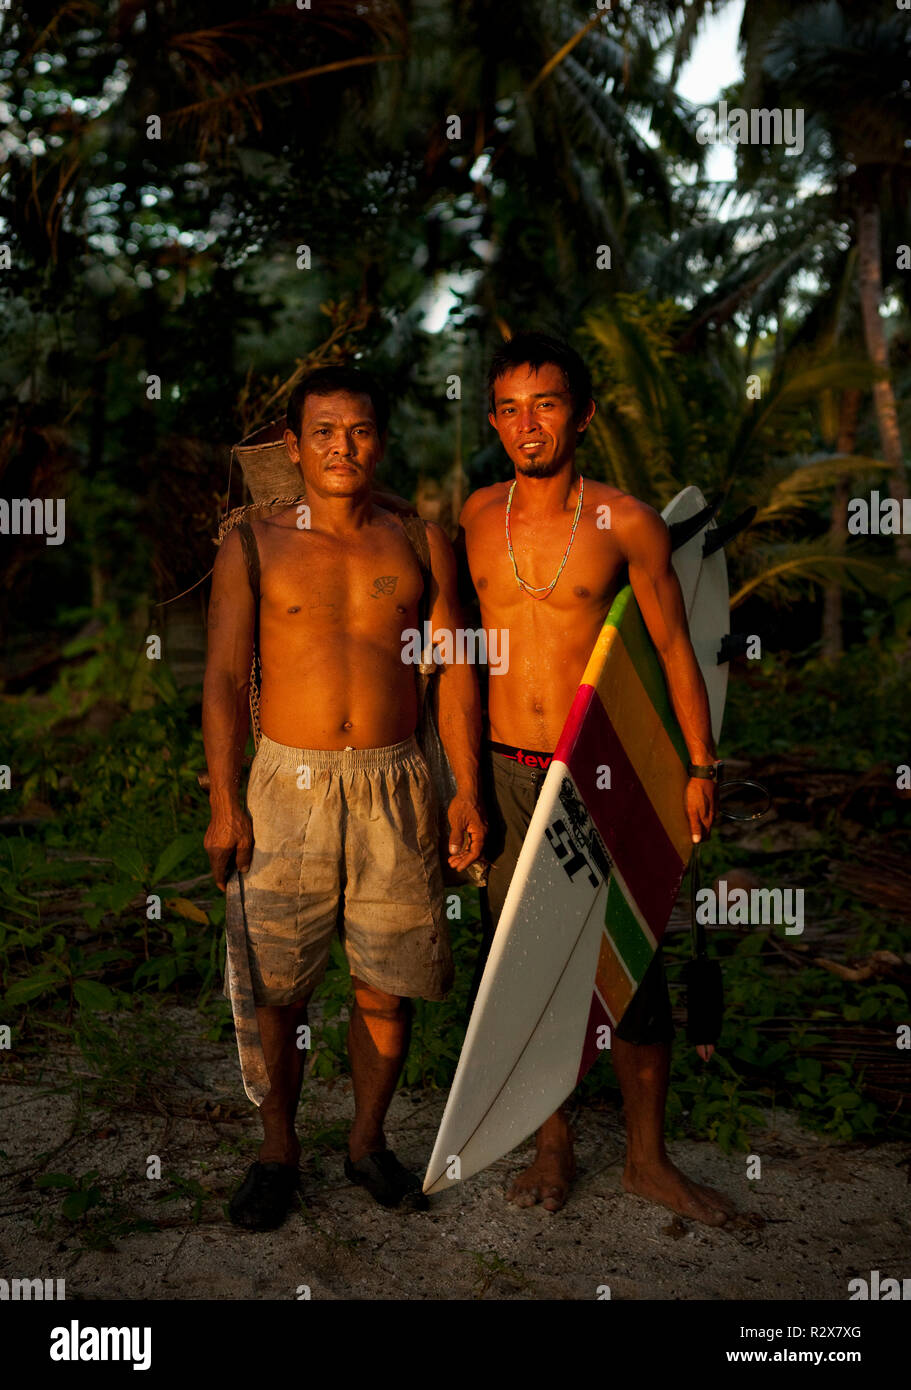 Surf guide Ibrahim and a local crab collector on Masokut Island, Indonesia. - Stock Image